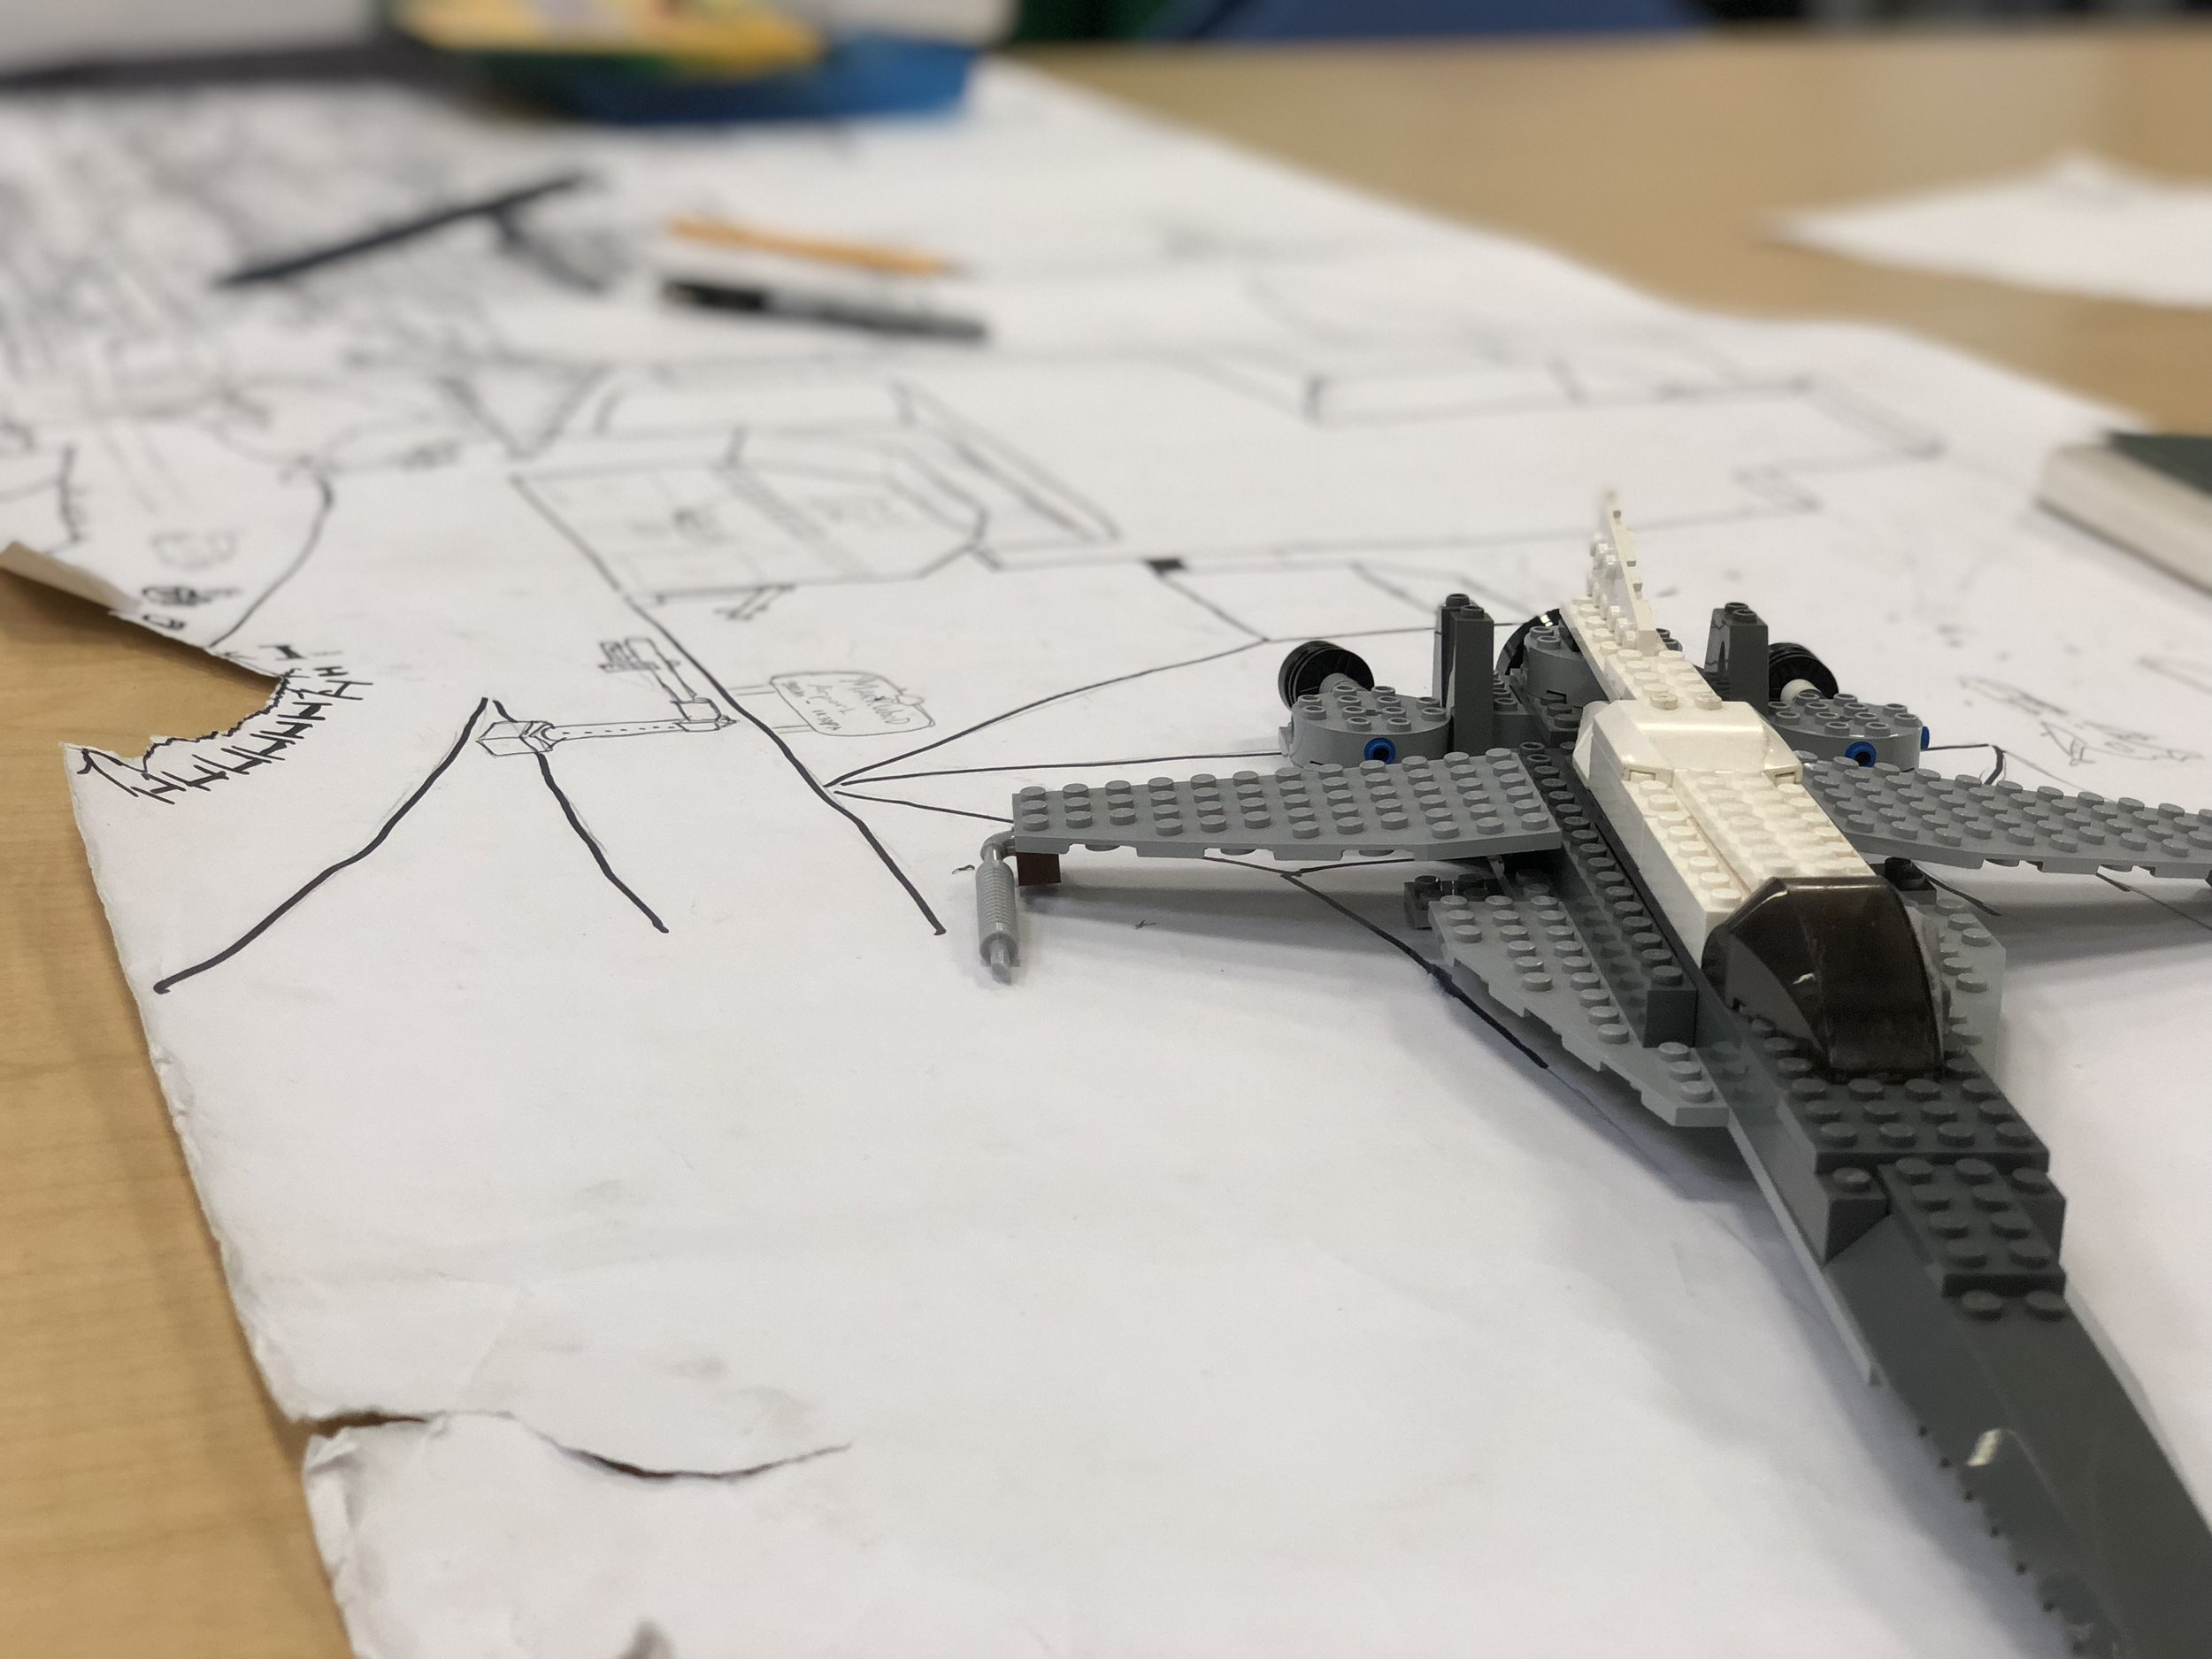 Toy aircraft made out of LEGOS on a desk.